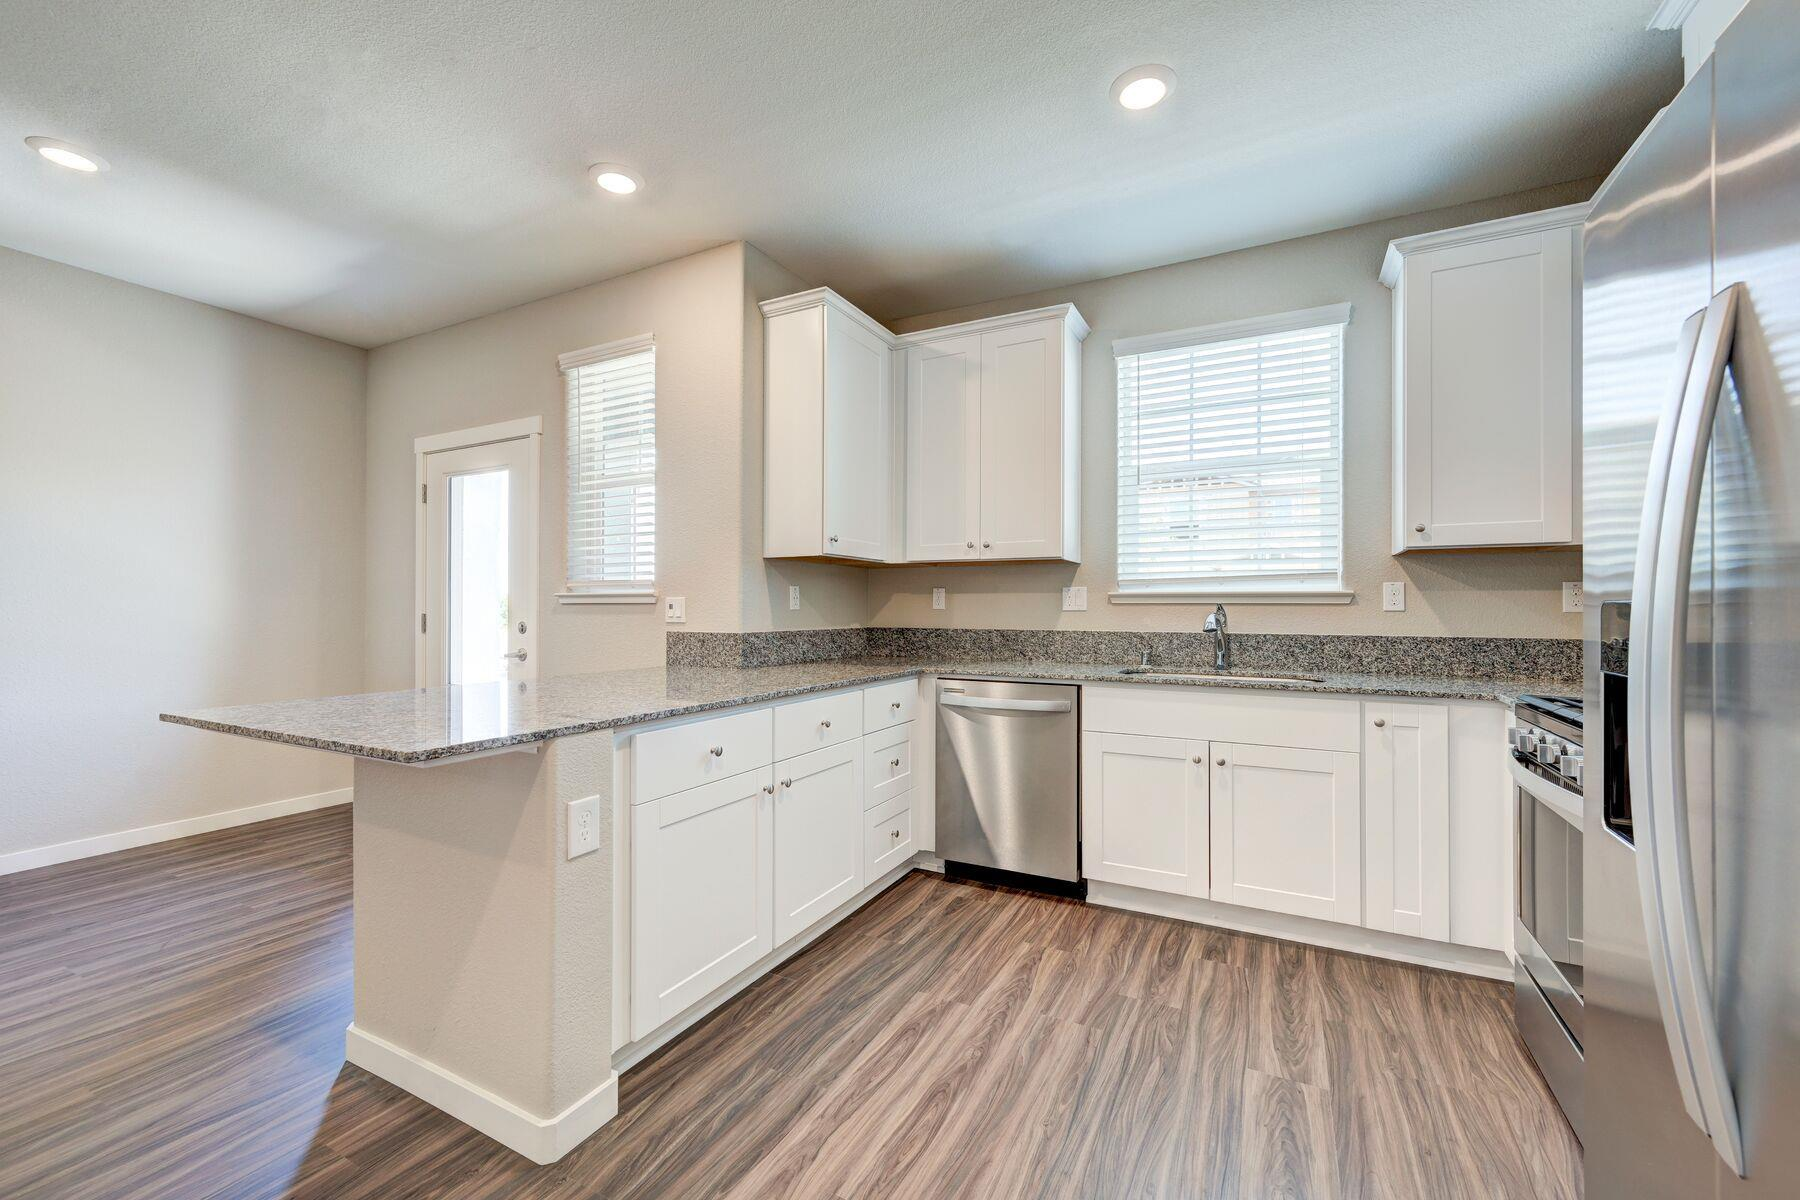 Kitchen featured in the Kennedy By LGI Homes in Sacramento, CA